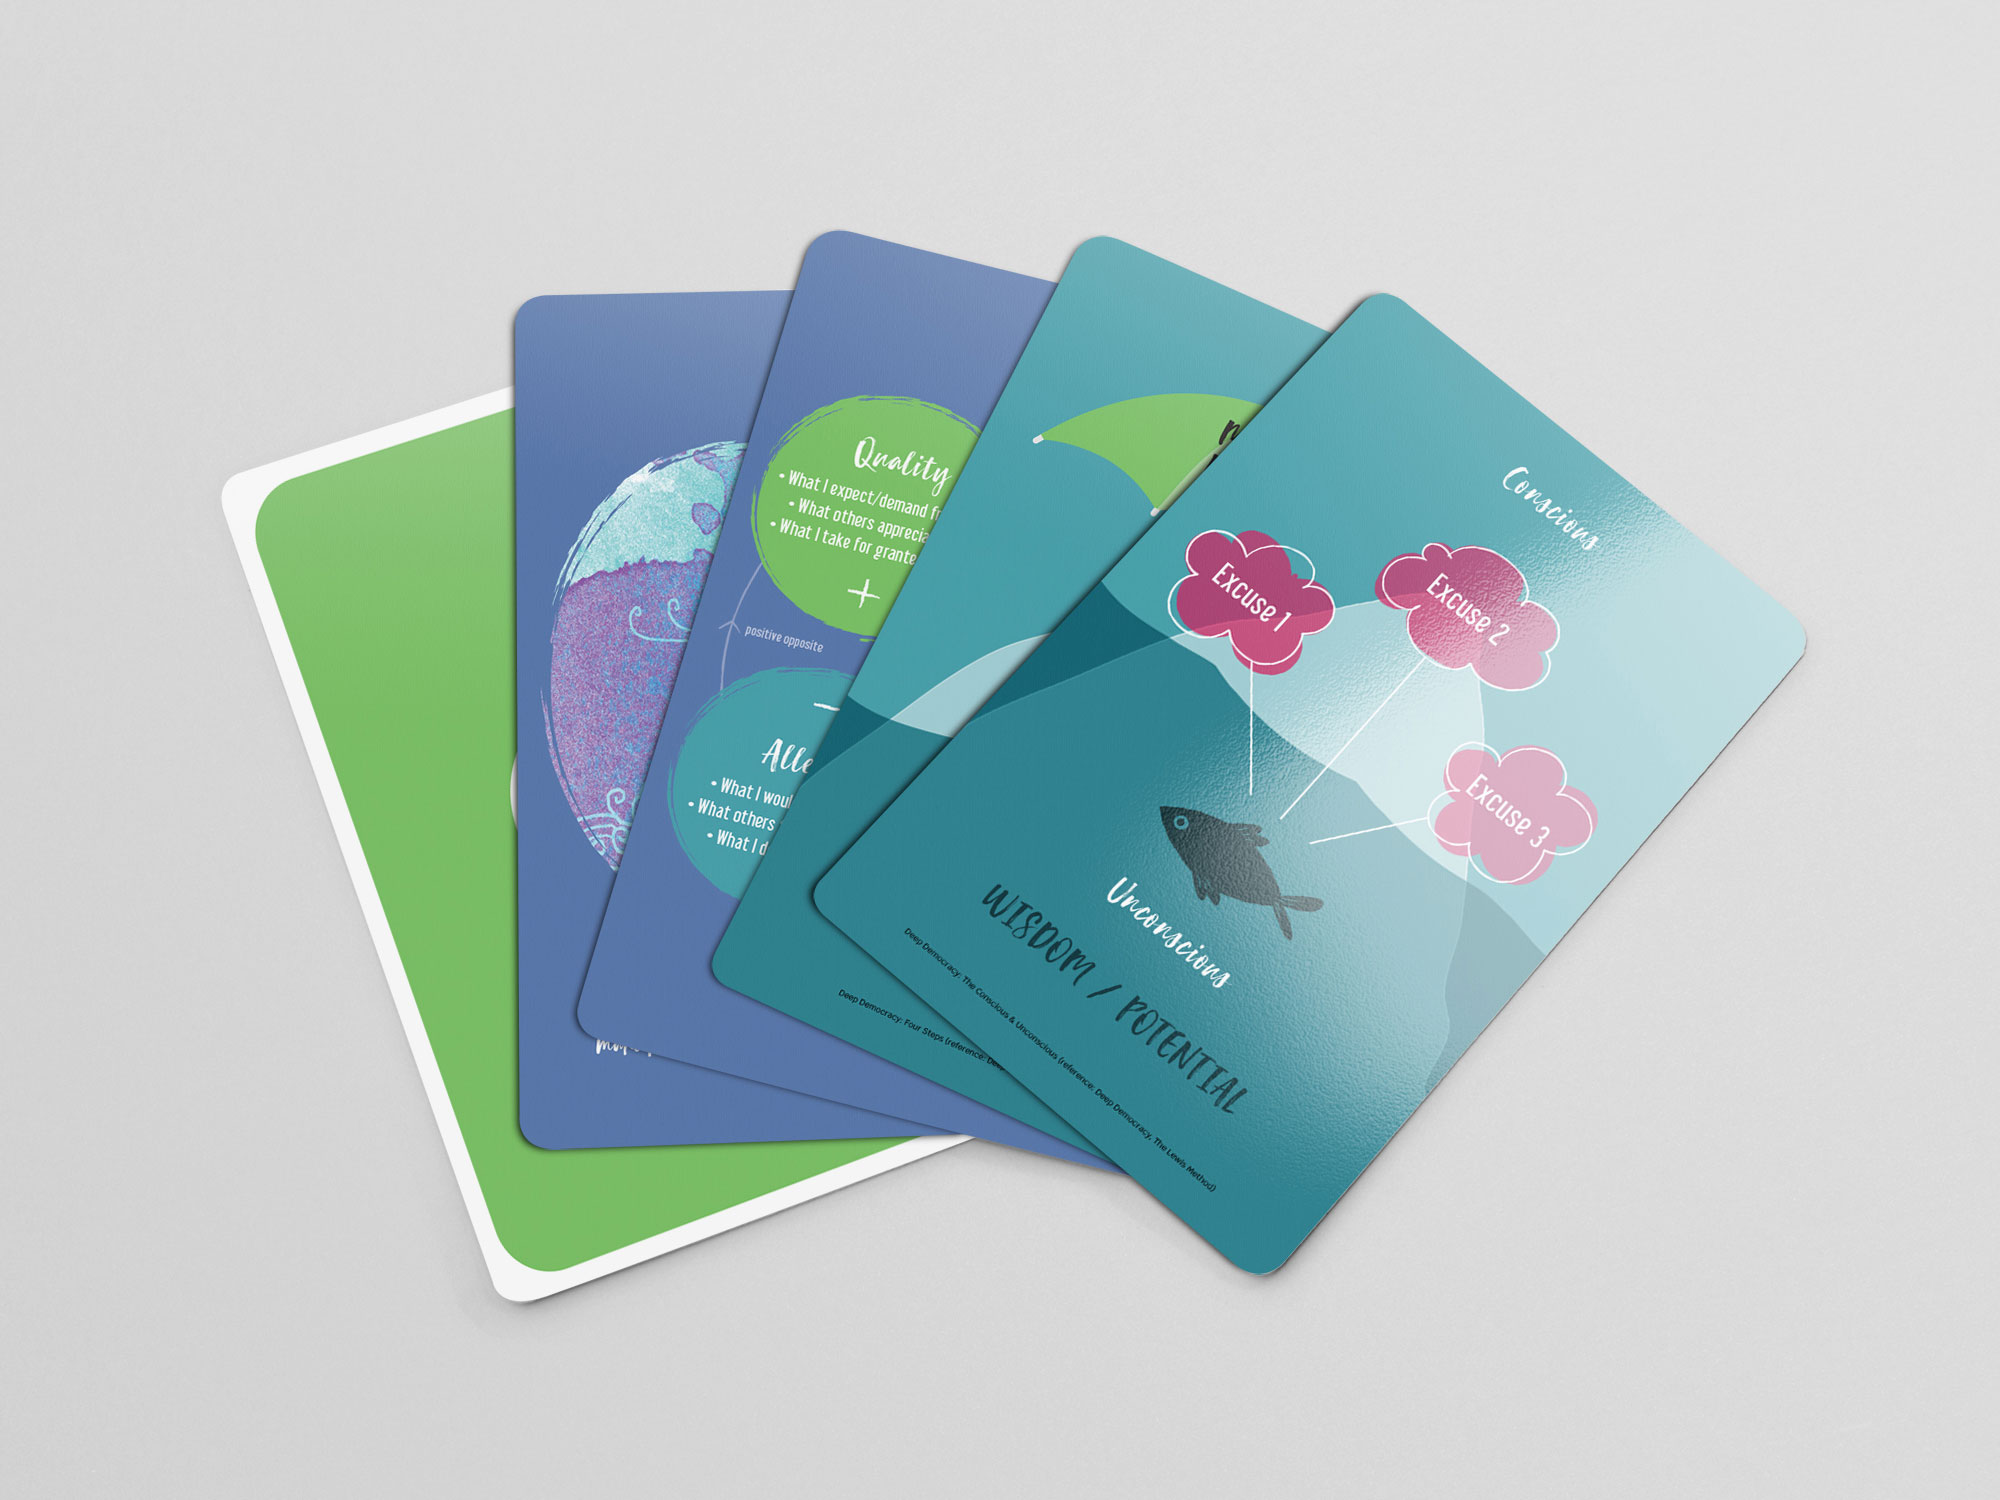 Branding Act Academy Cards